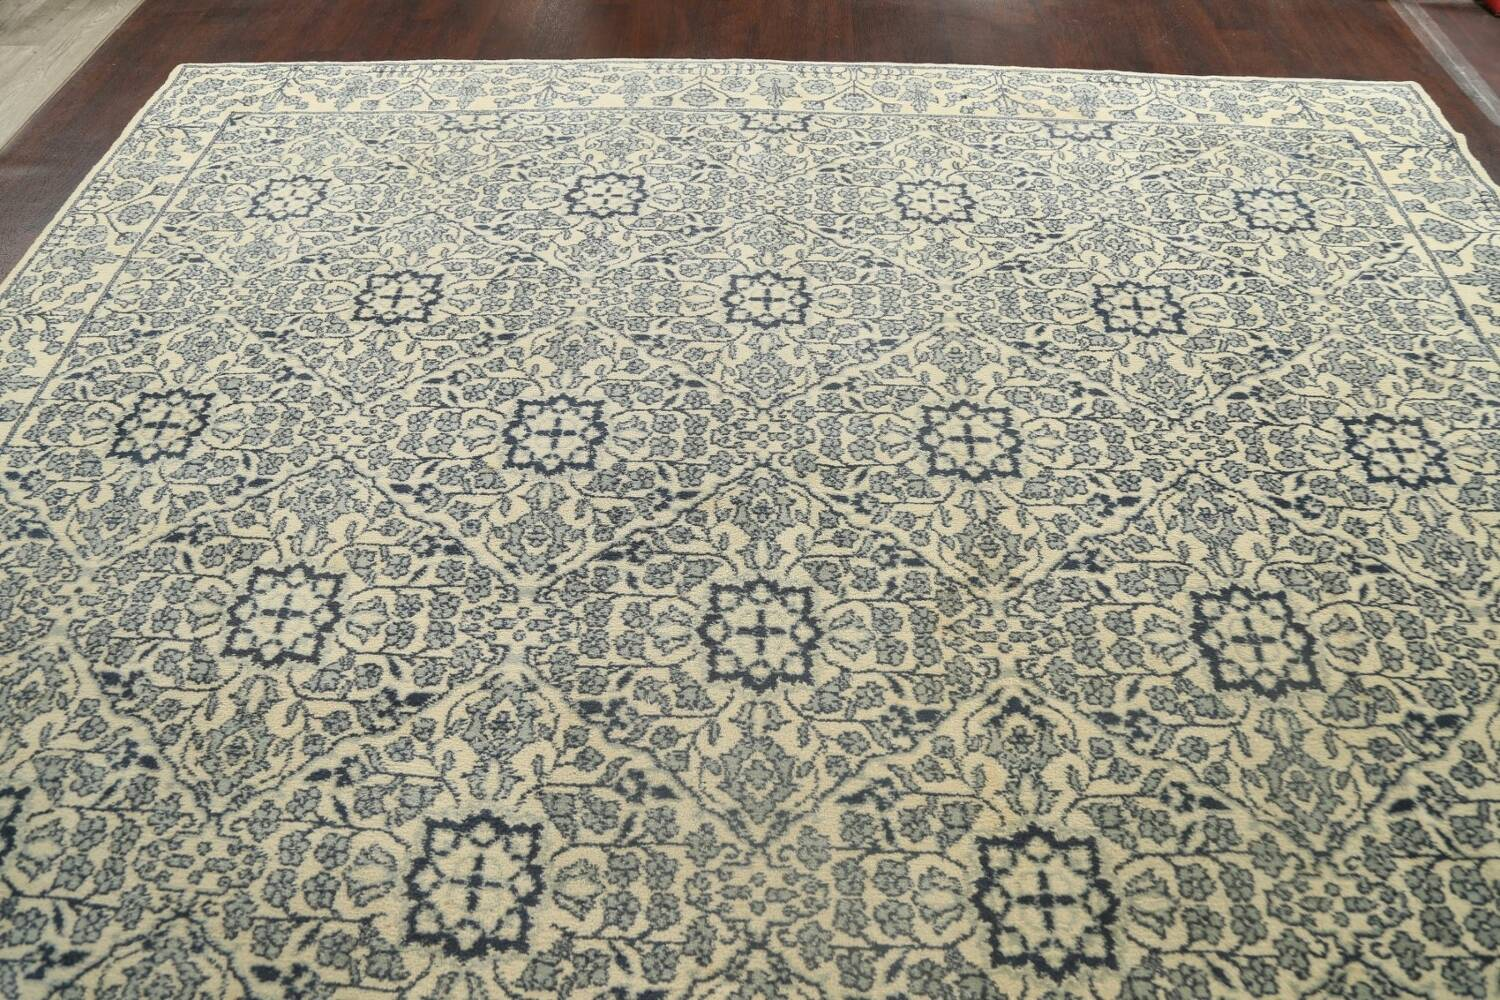 Large All-Over Oushak Oriental Area Rug 11x15 image 13